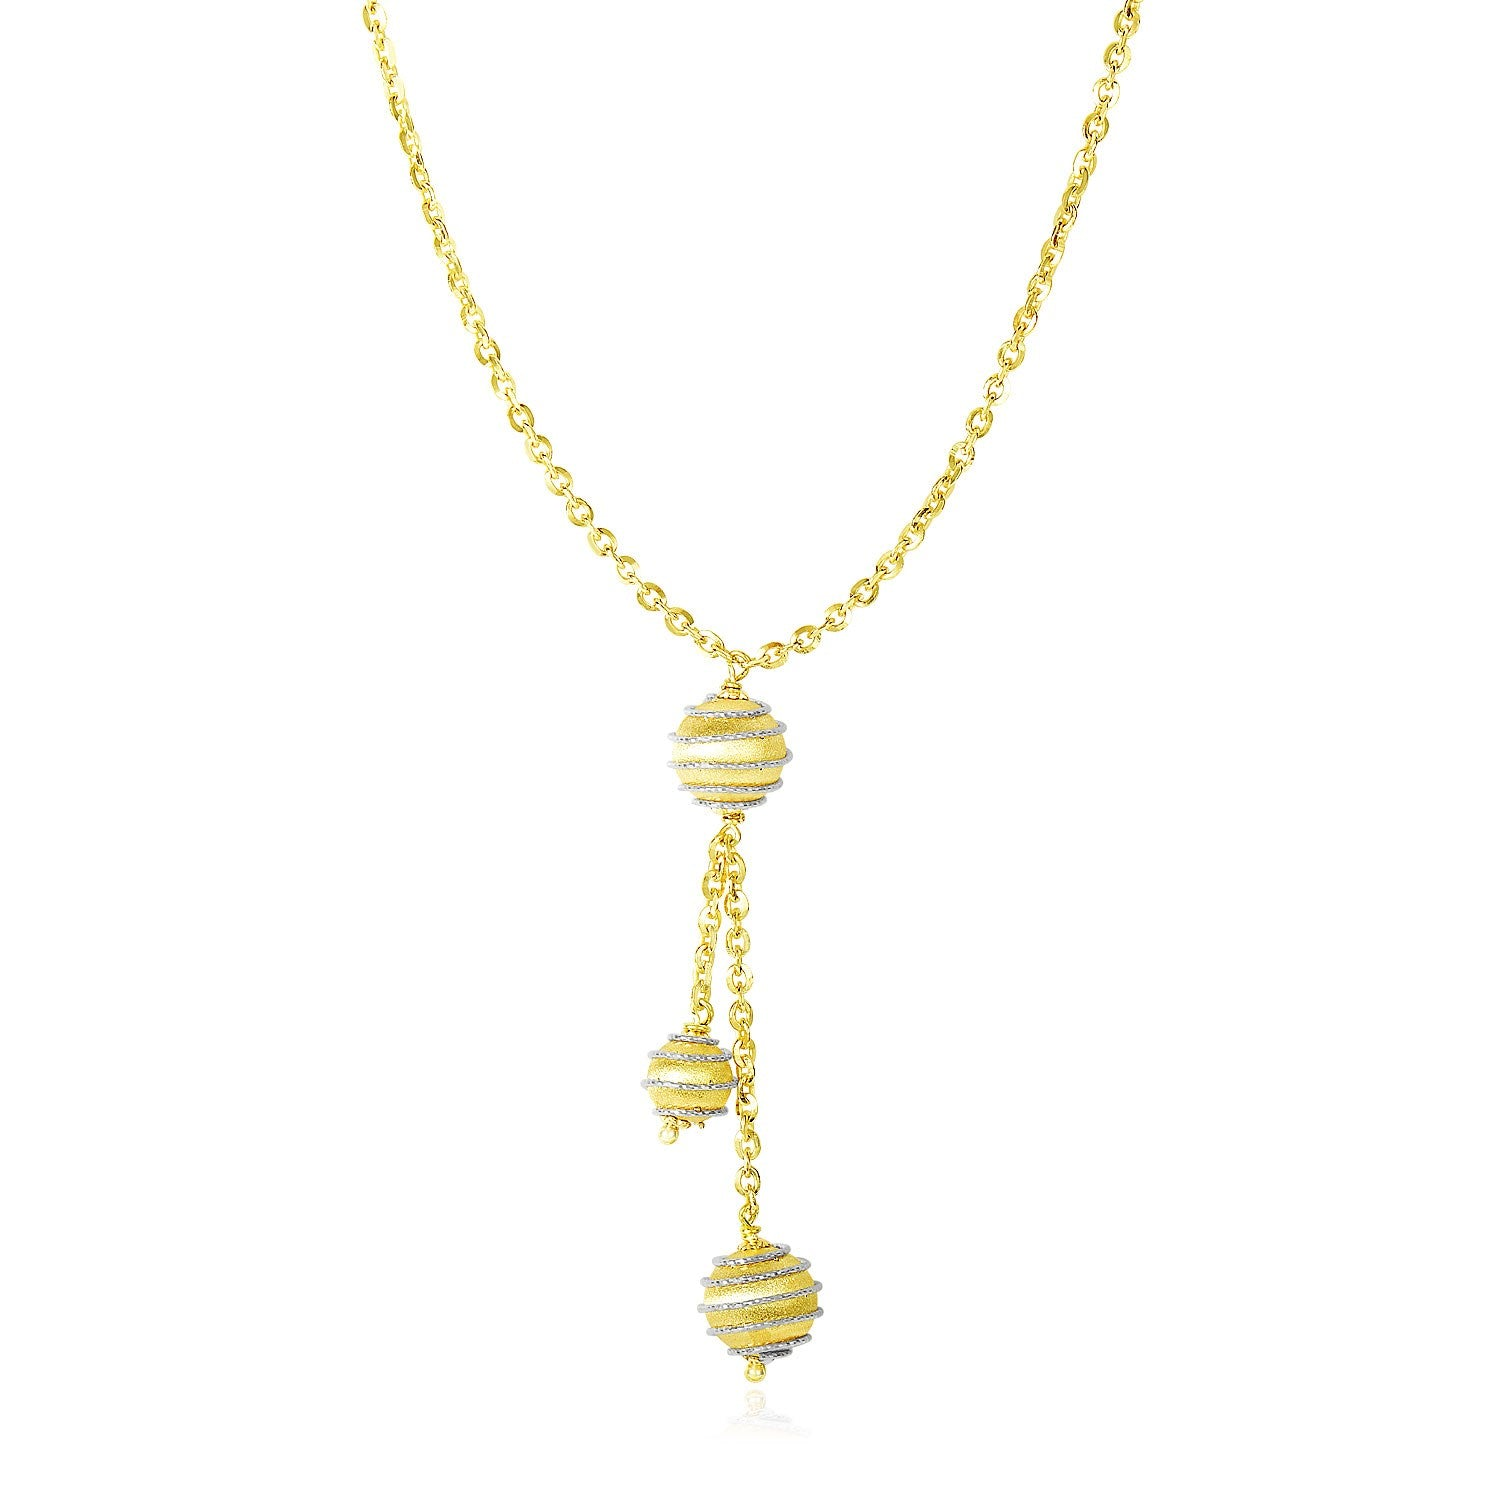 14K Two-Tone Gold Lariat Style Necklace with Coil Wrapped Balls